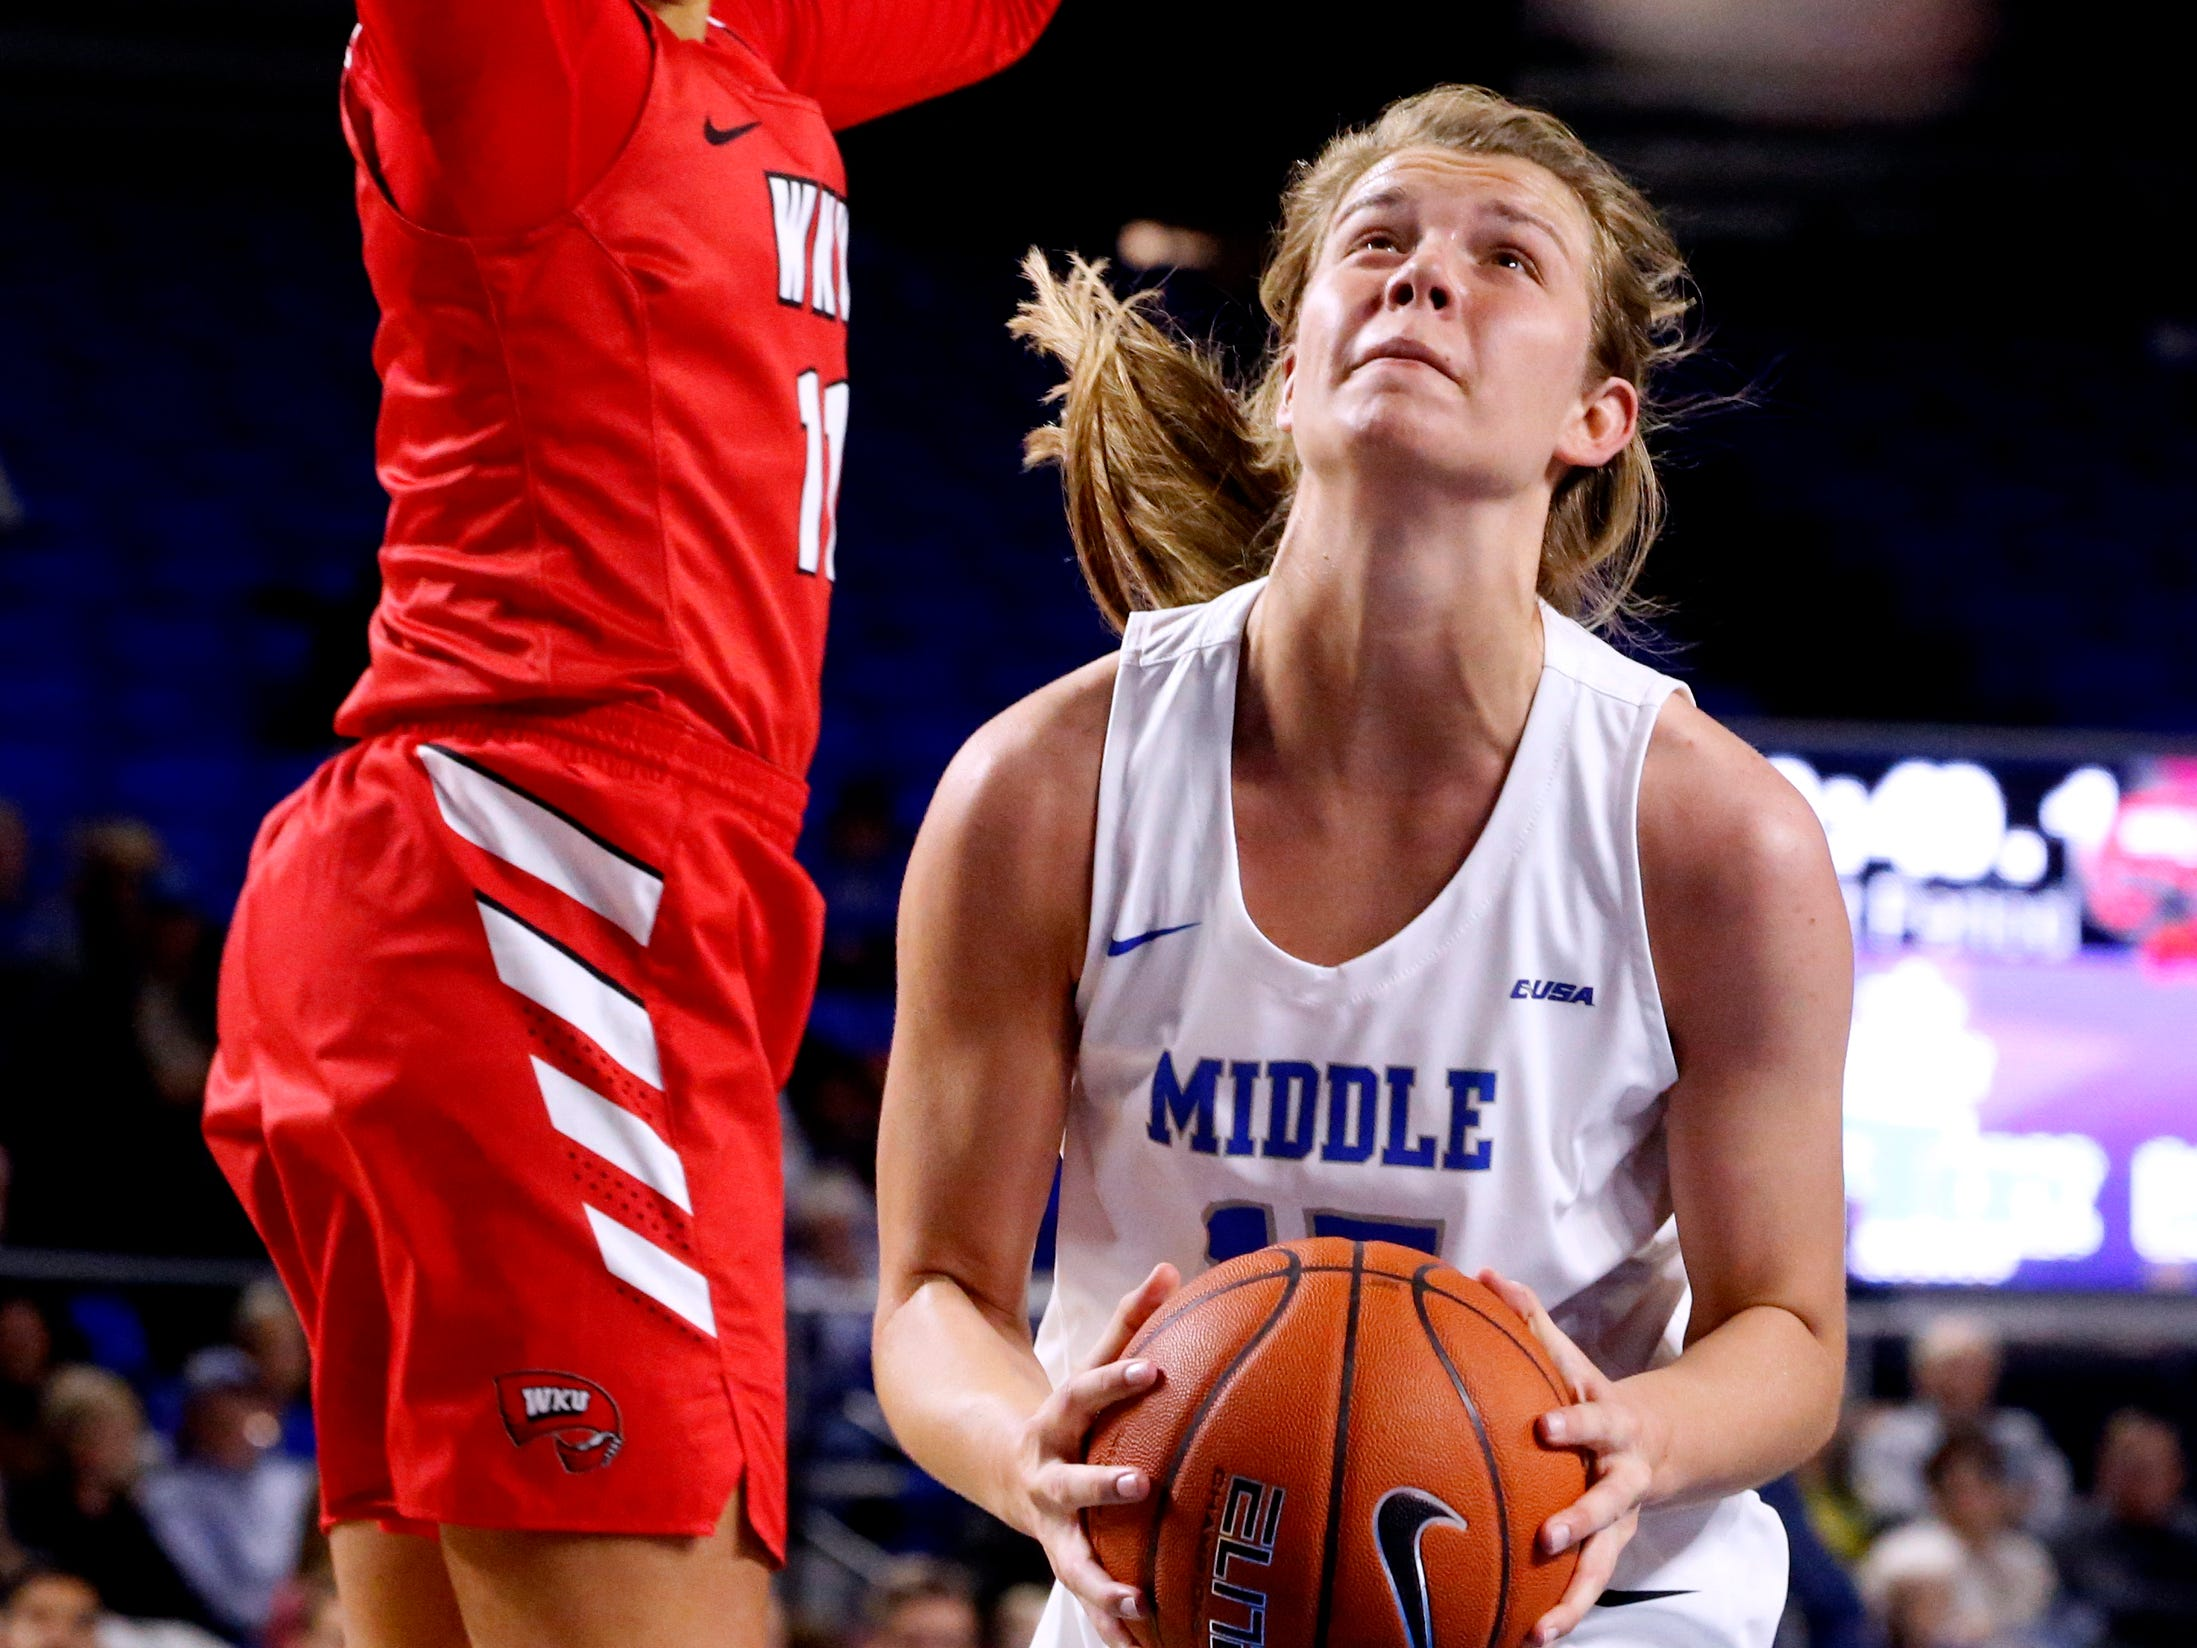 MTSU's guard Anna Jones (15) goes up for a shot as Western's guard Alexis Brewer (11) guards her on Thursday, Feb. 14, 2019.